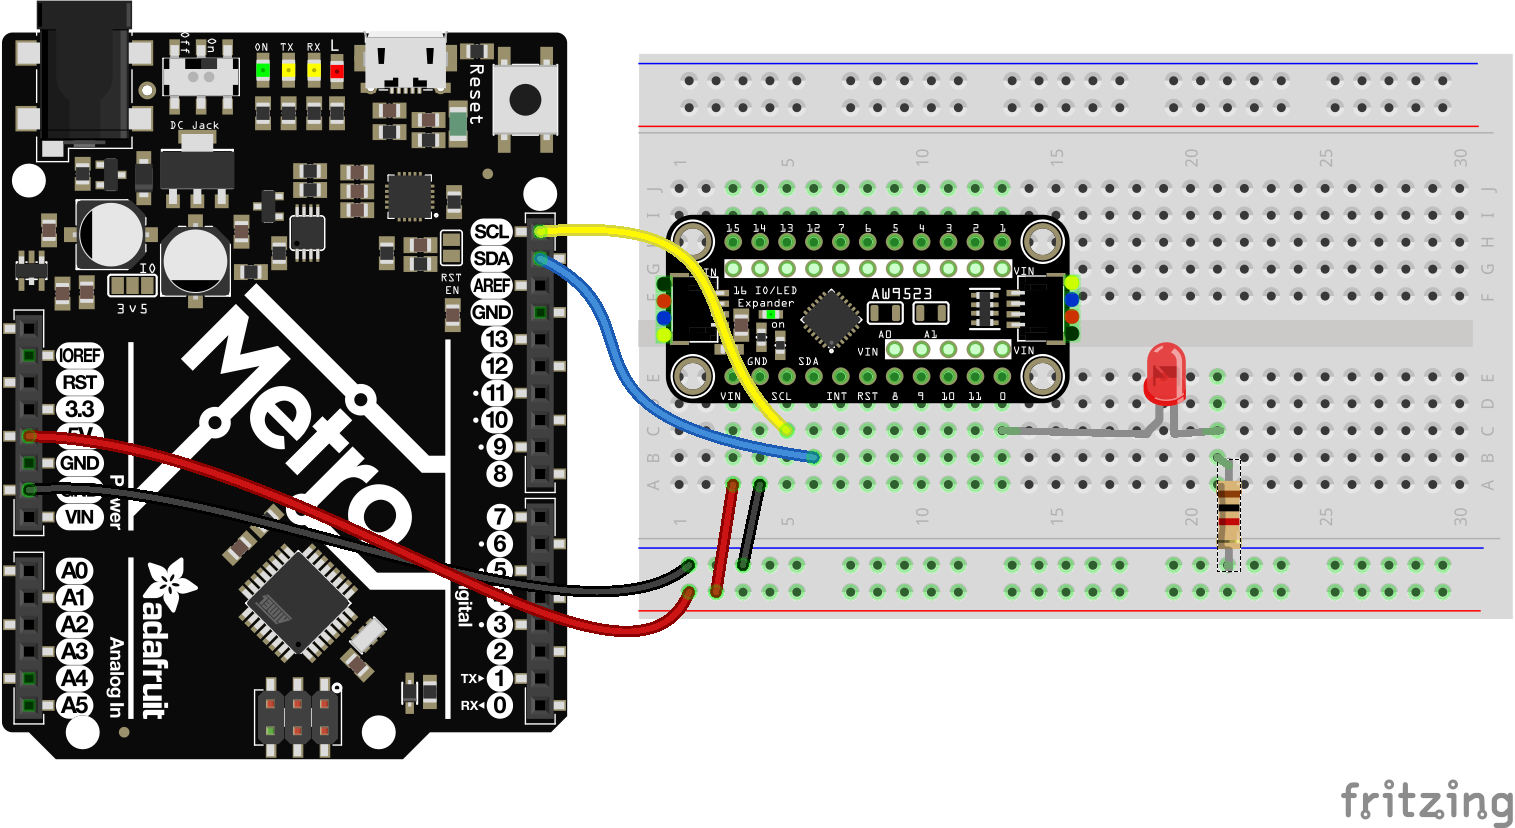 adafruit_products_oneled.png